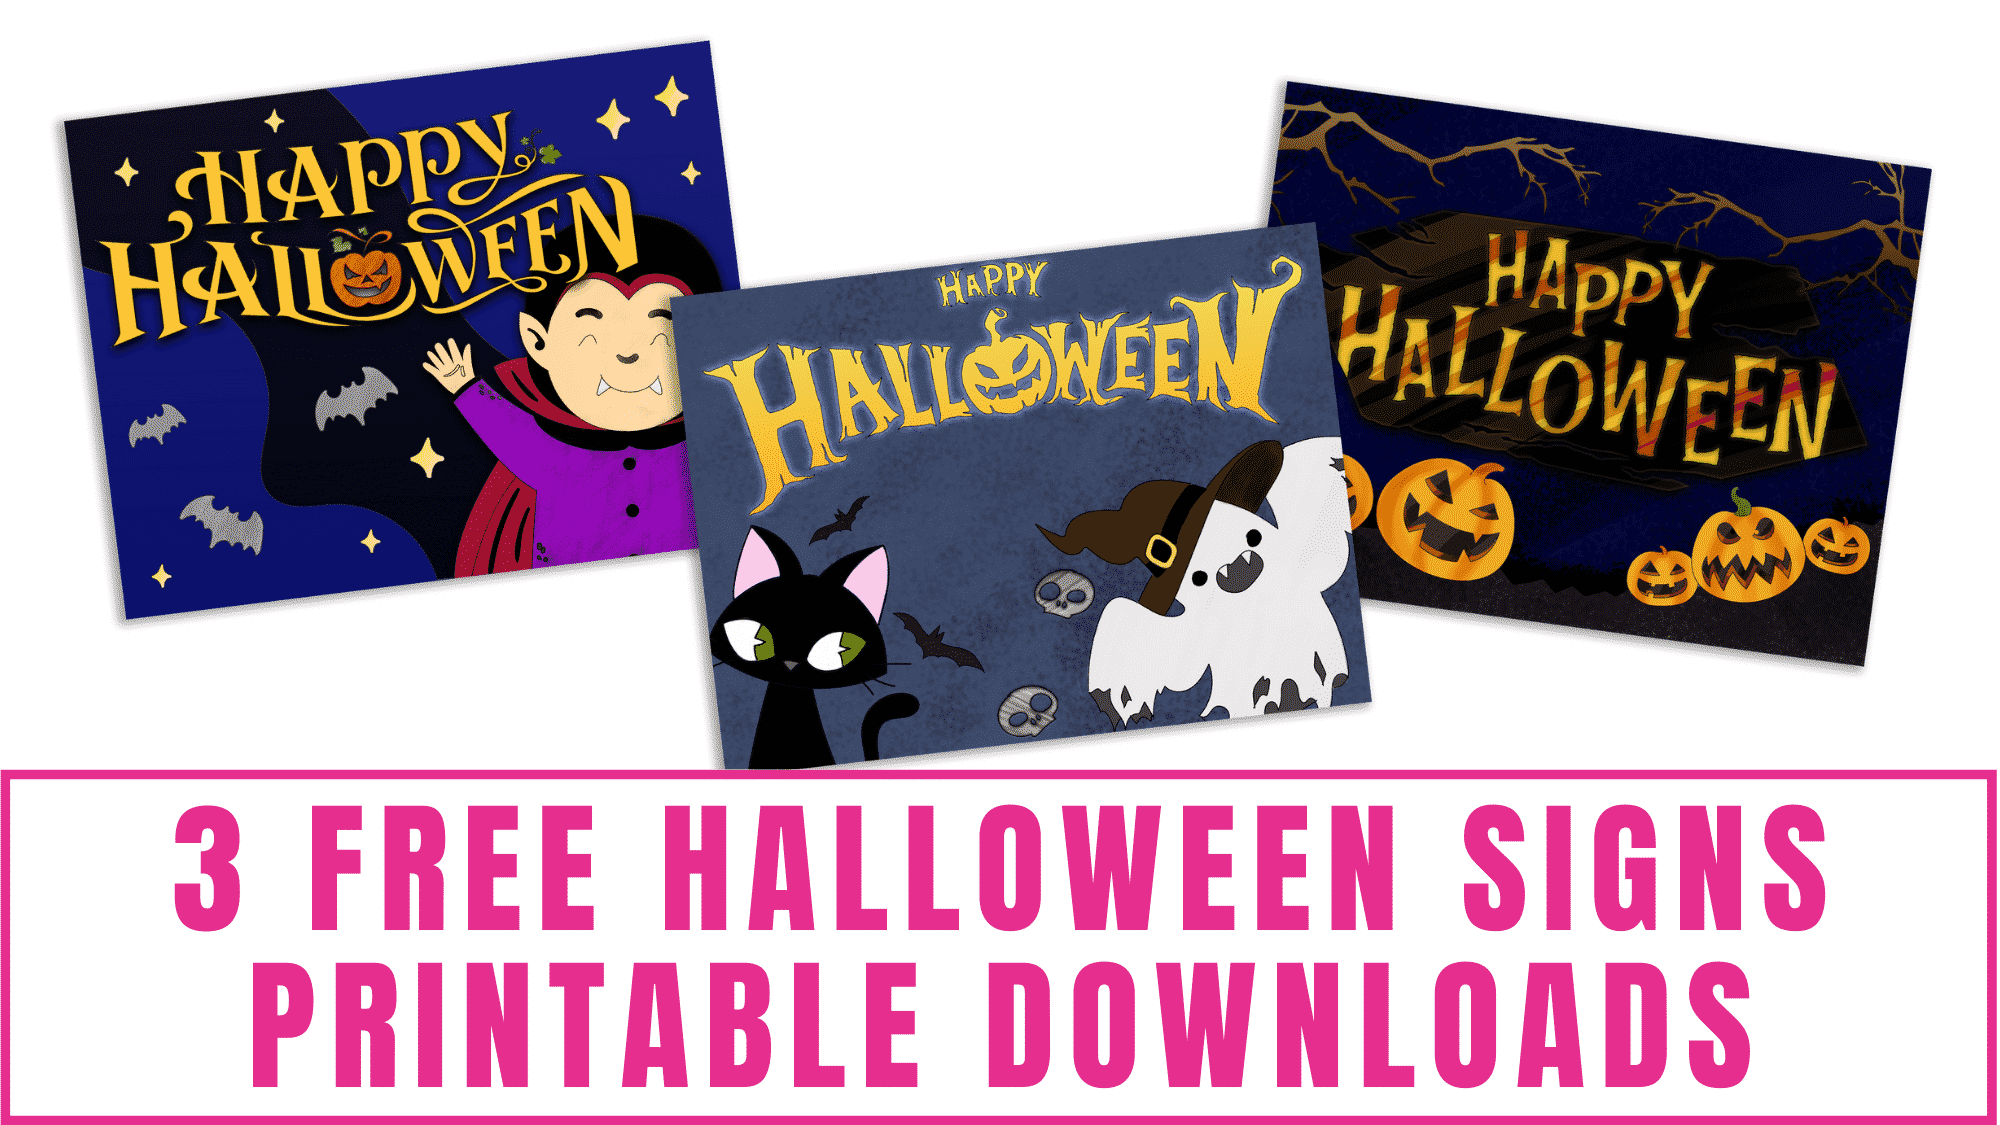 Is your home ready for Halloween? If not you are in luck because these free Halloween signs printable downloads can help you get your home holiday ready on a budget.